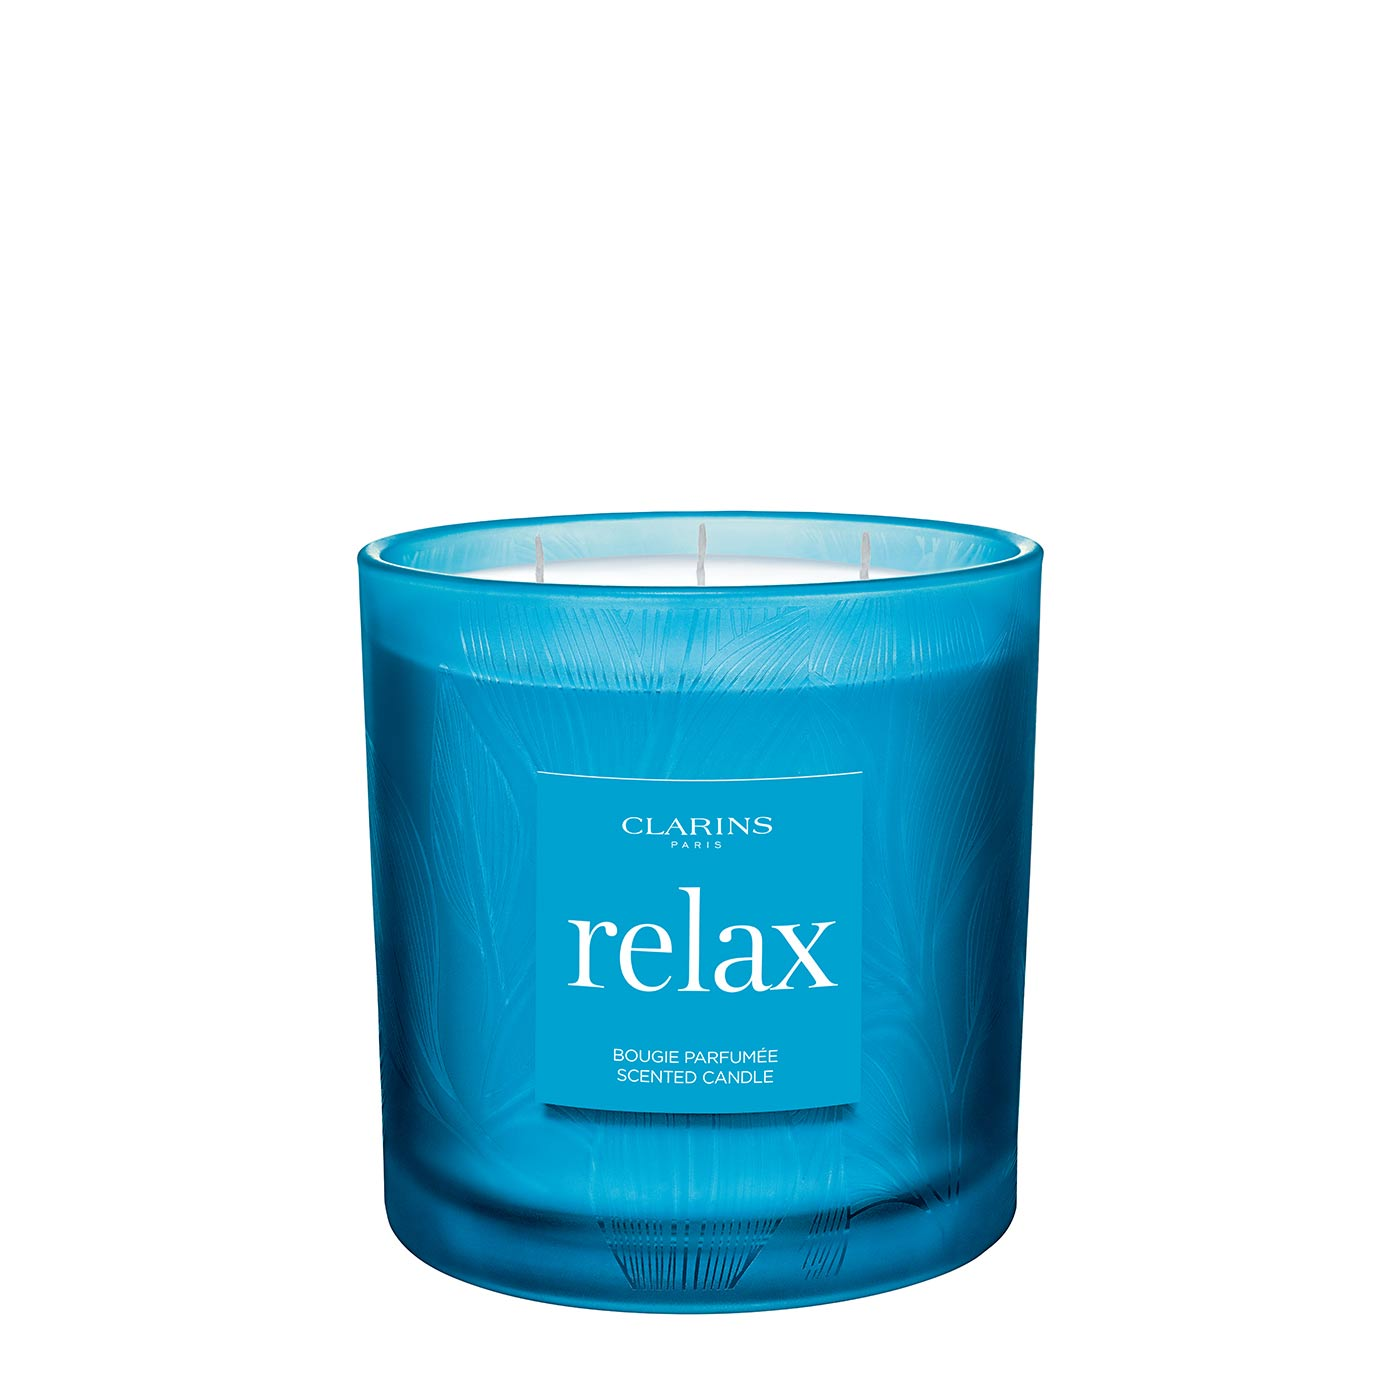 Relax Scented Candle Spa Treatment Scented Candle Clarins